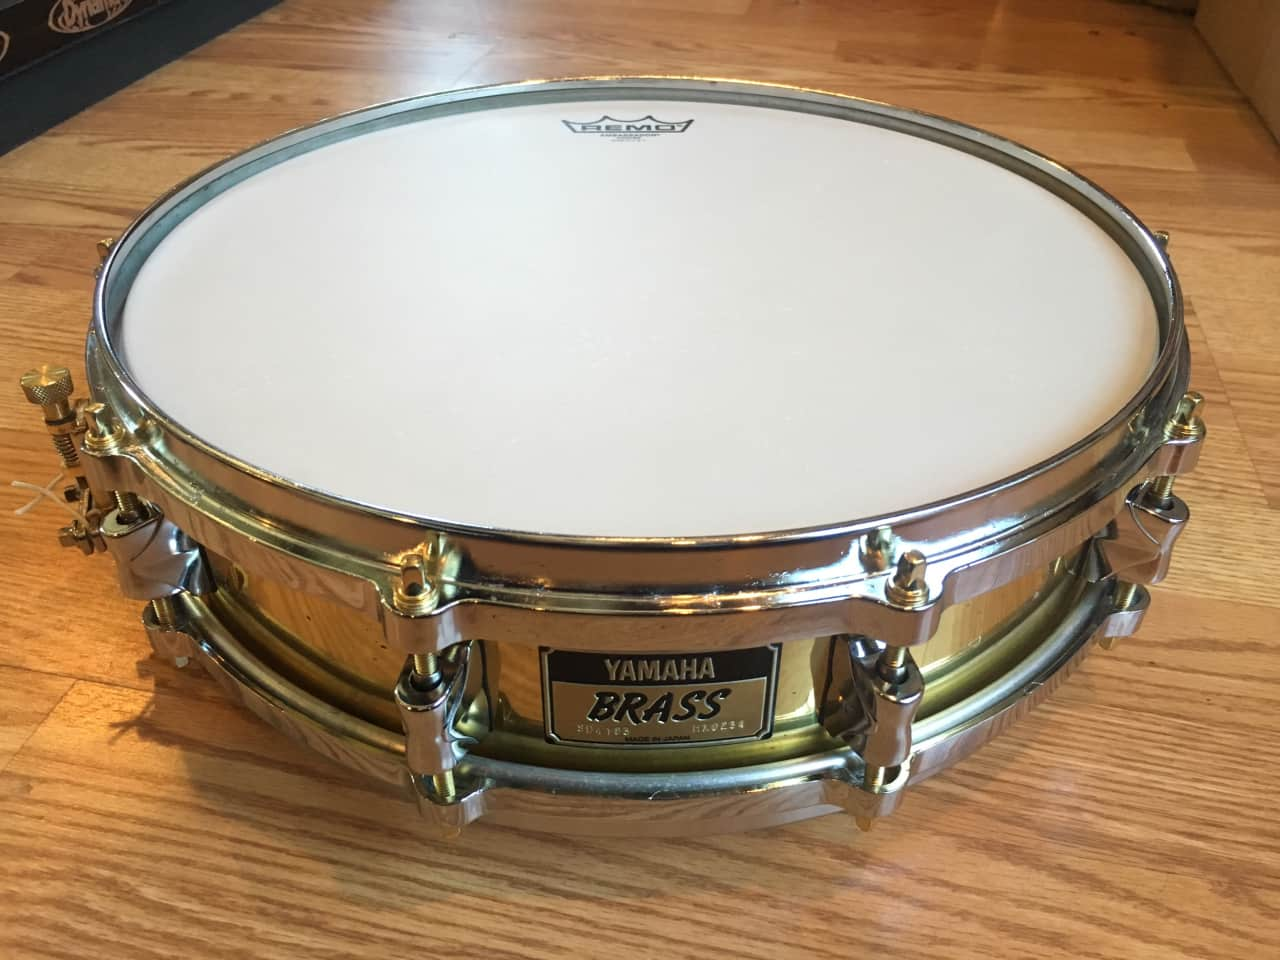 Yamaha 14 x 3 5 seamless brass piccolo snare reverb for Piccolo prices yamaha